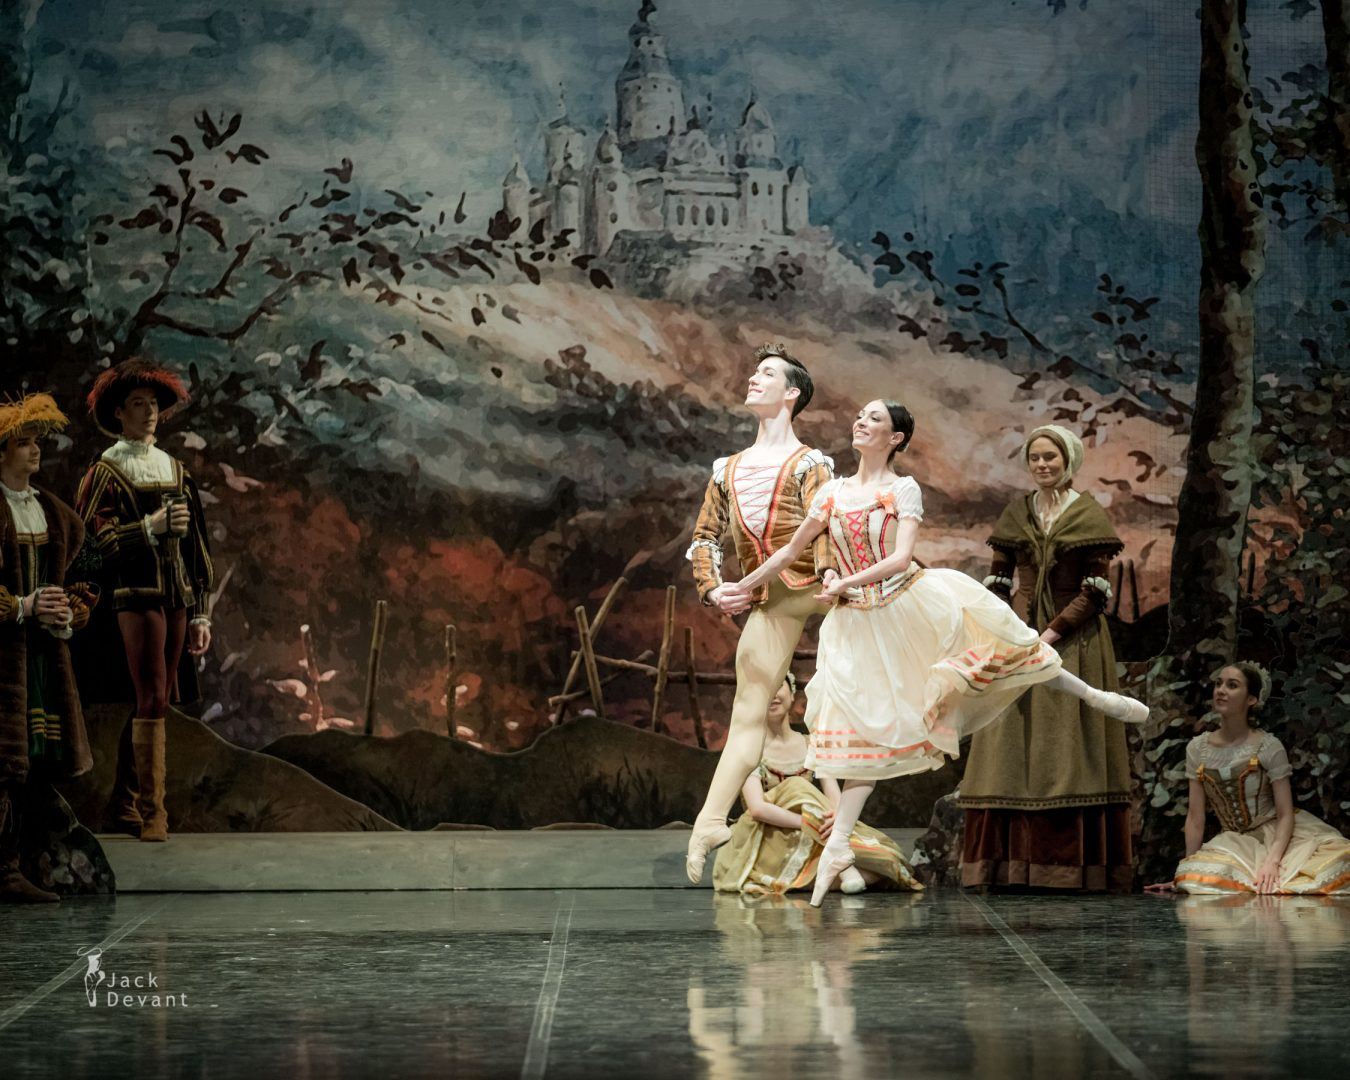 Giselle, Marta Navasardyan and Eneko Amoros in peasant pdd beginning